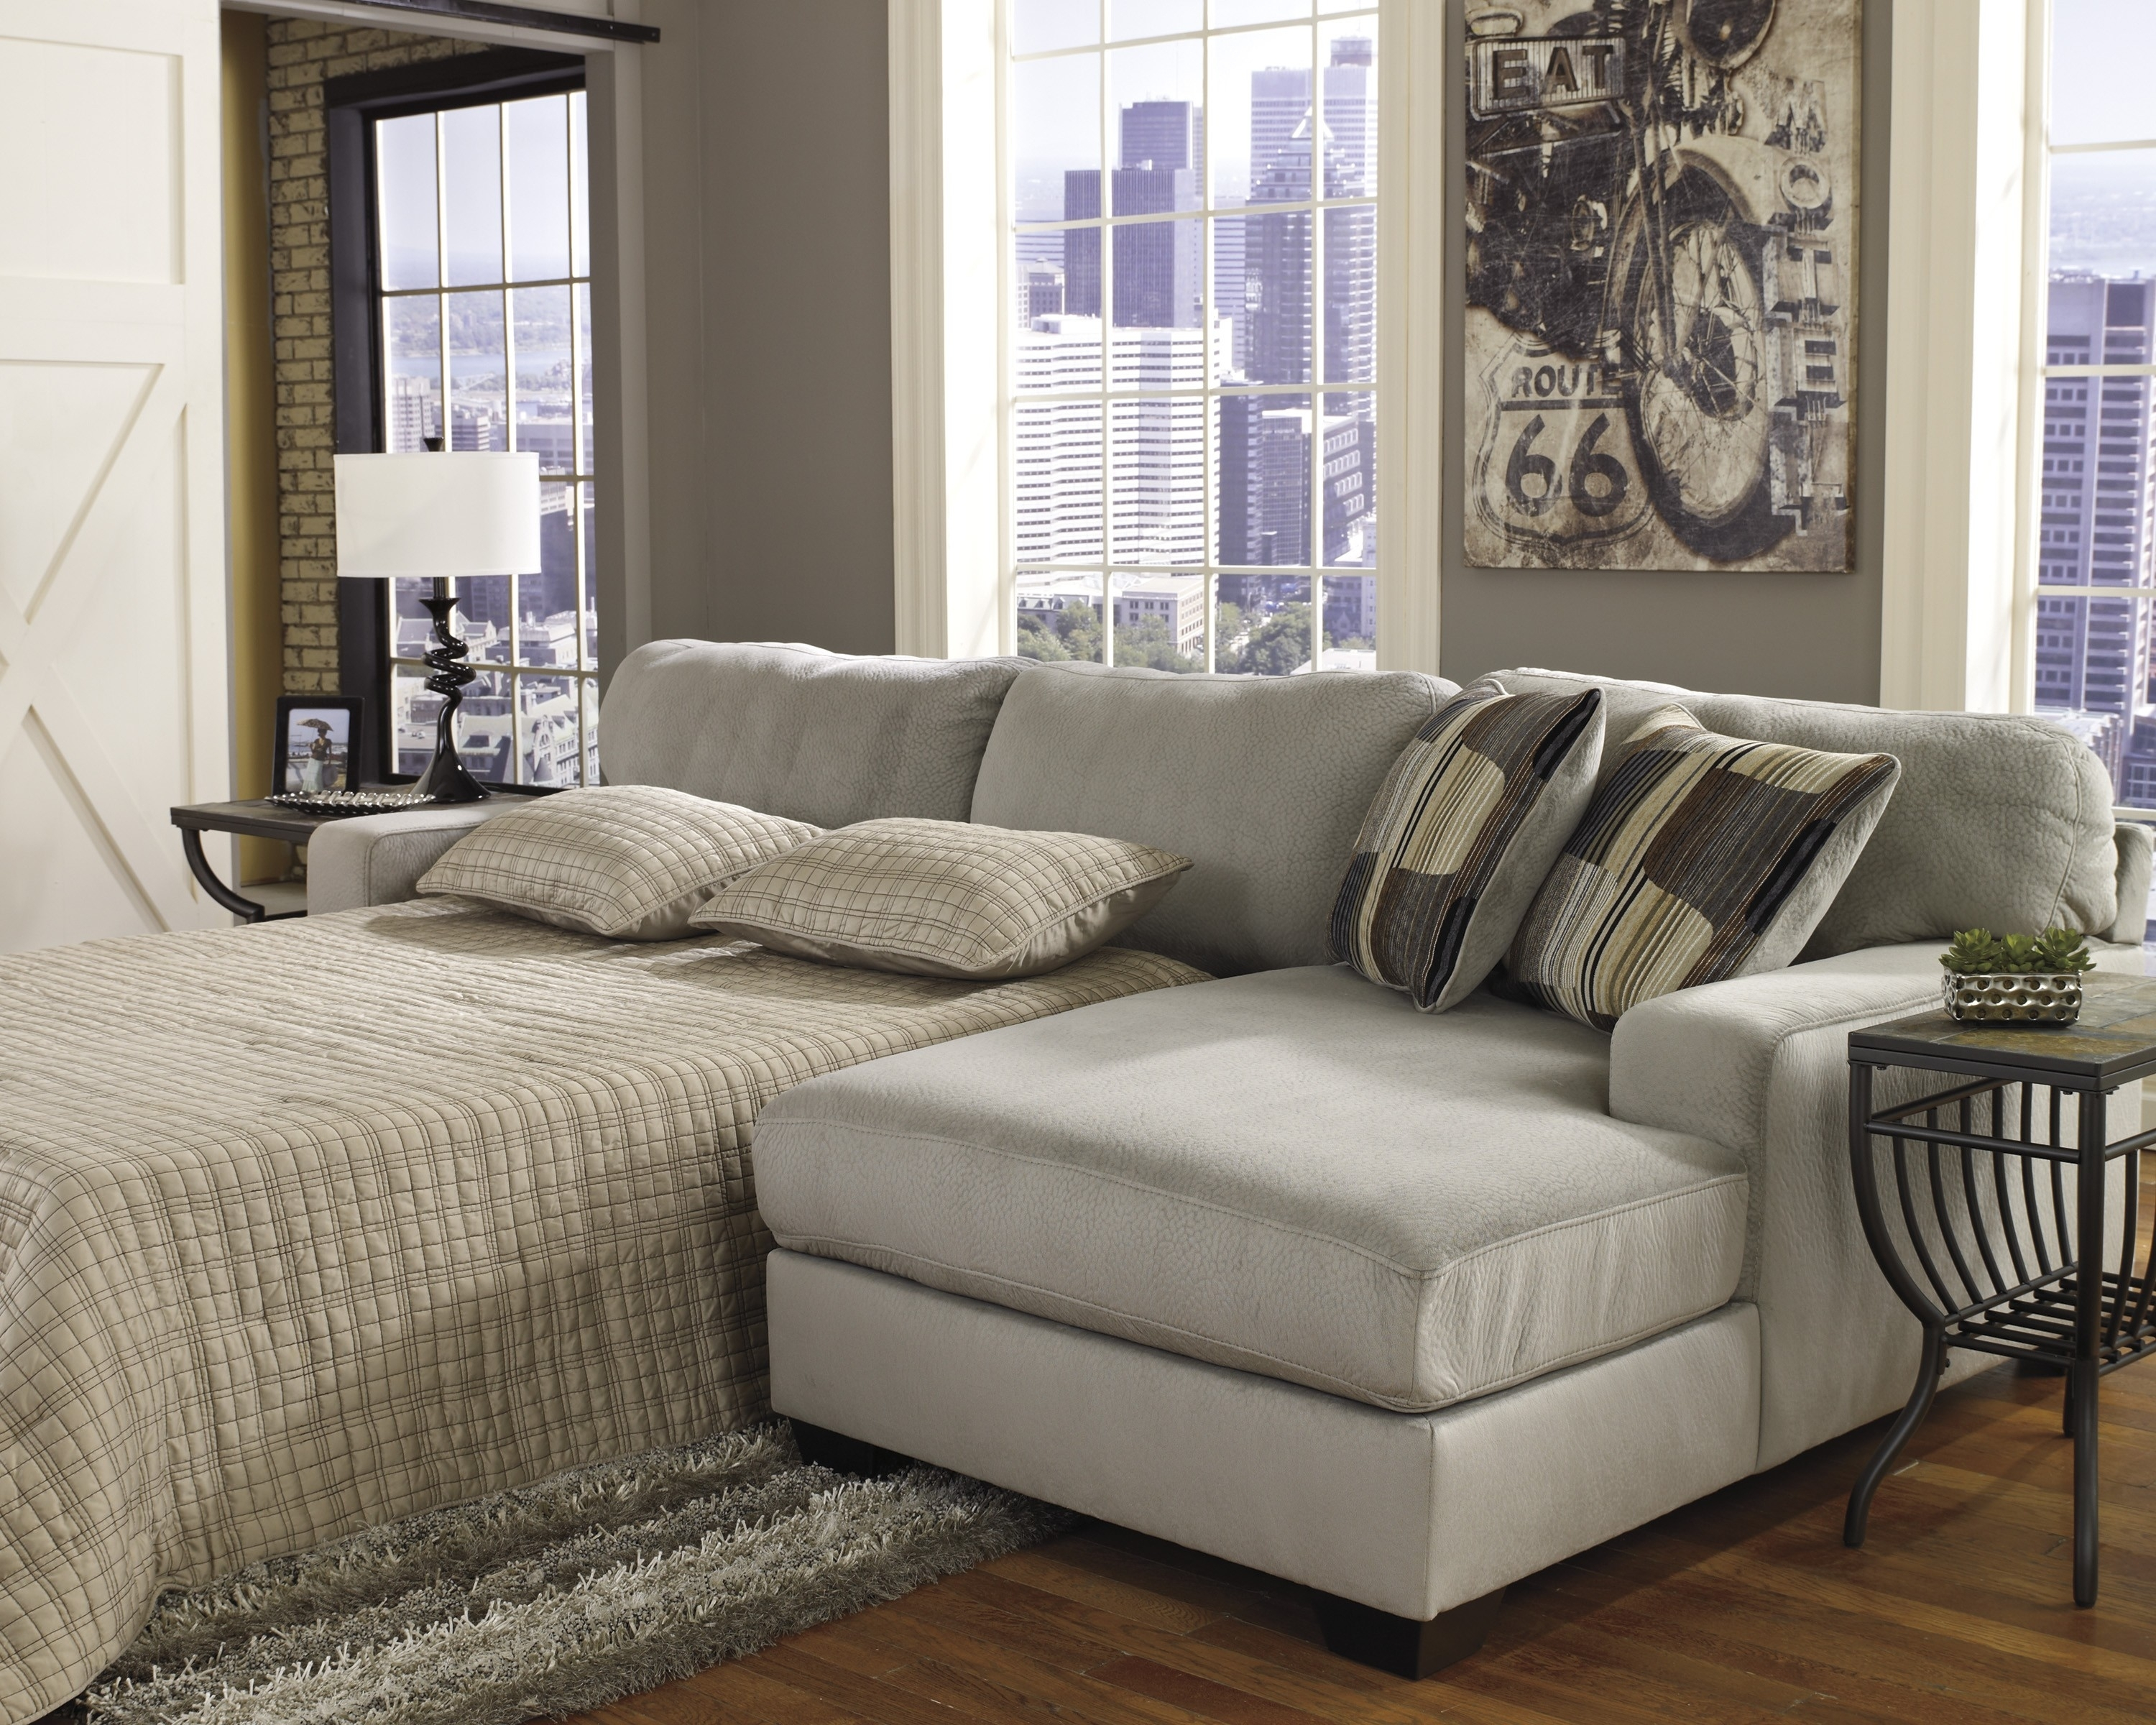 Sofa Bed Sectional With Chaise | Creativeadvertisingblog throughout Lucy Dark Grey 2 Piece Sleeper Sectionals With Laf Chaise (Image 29 of 30)